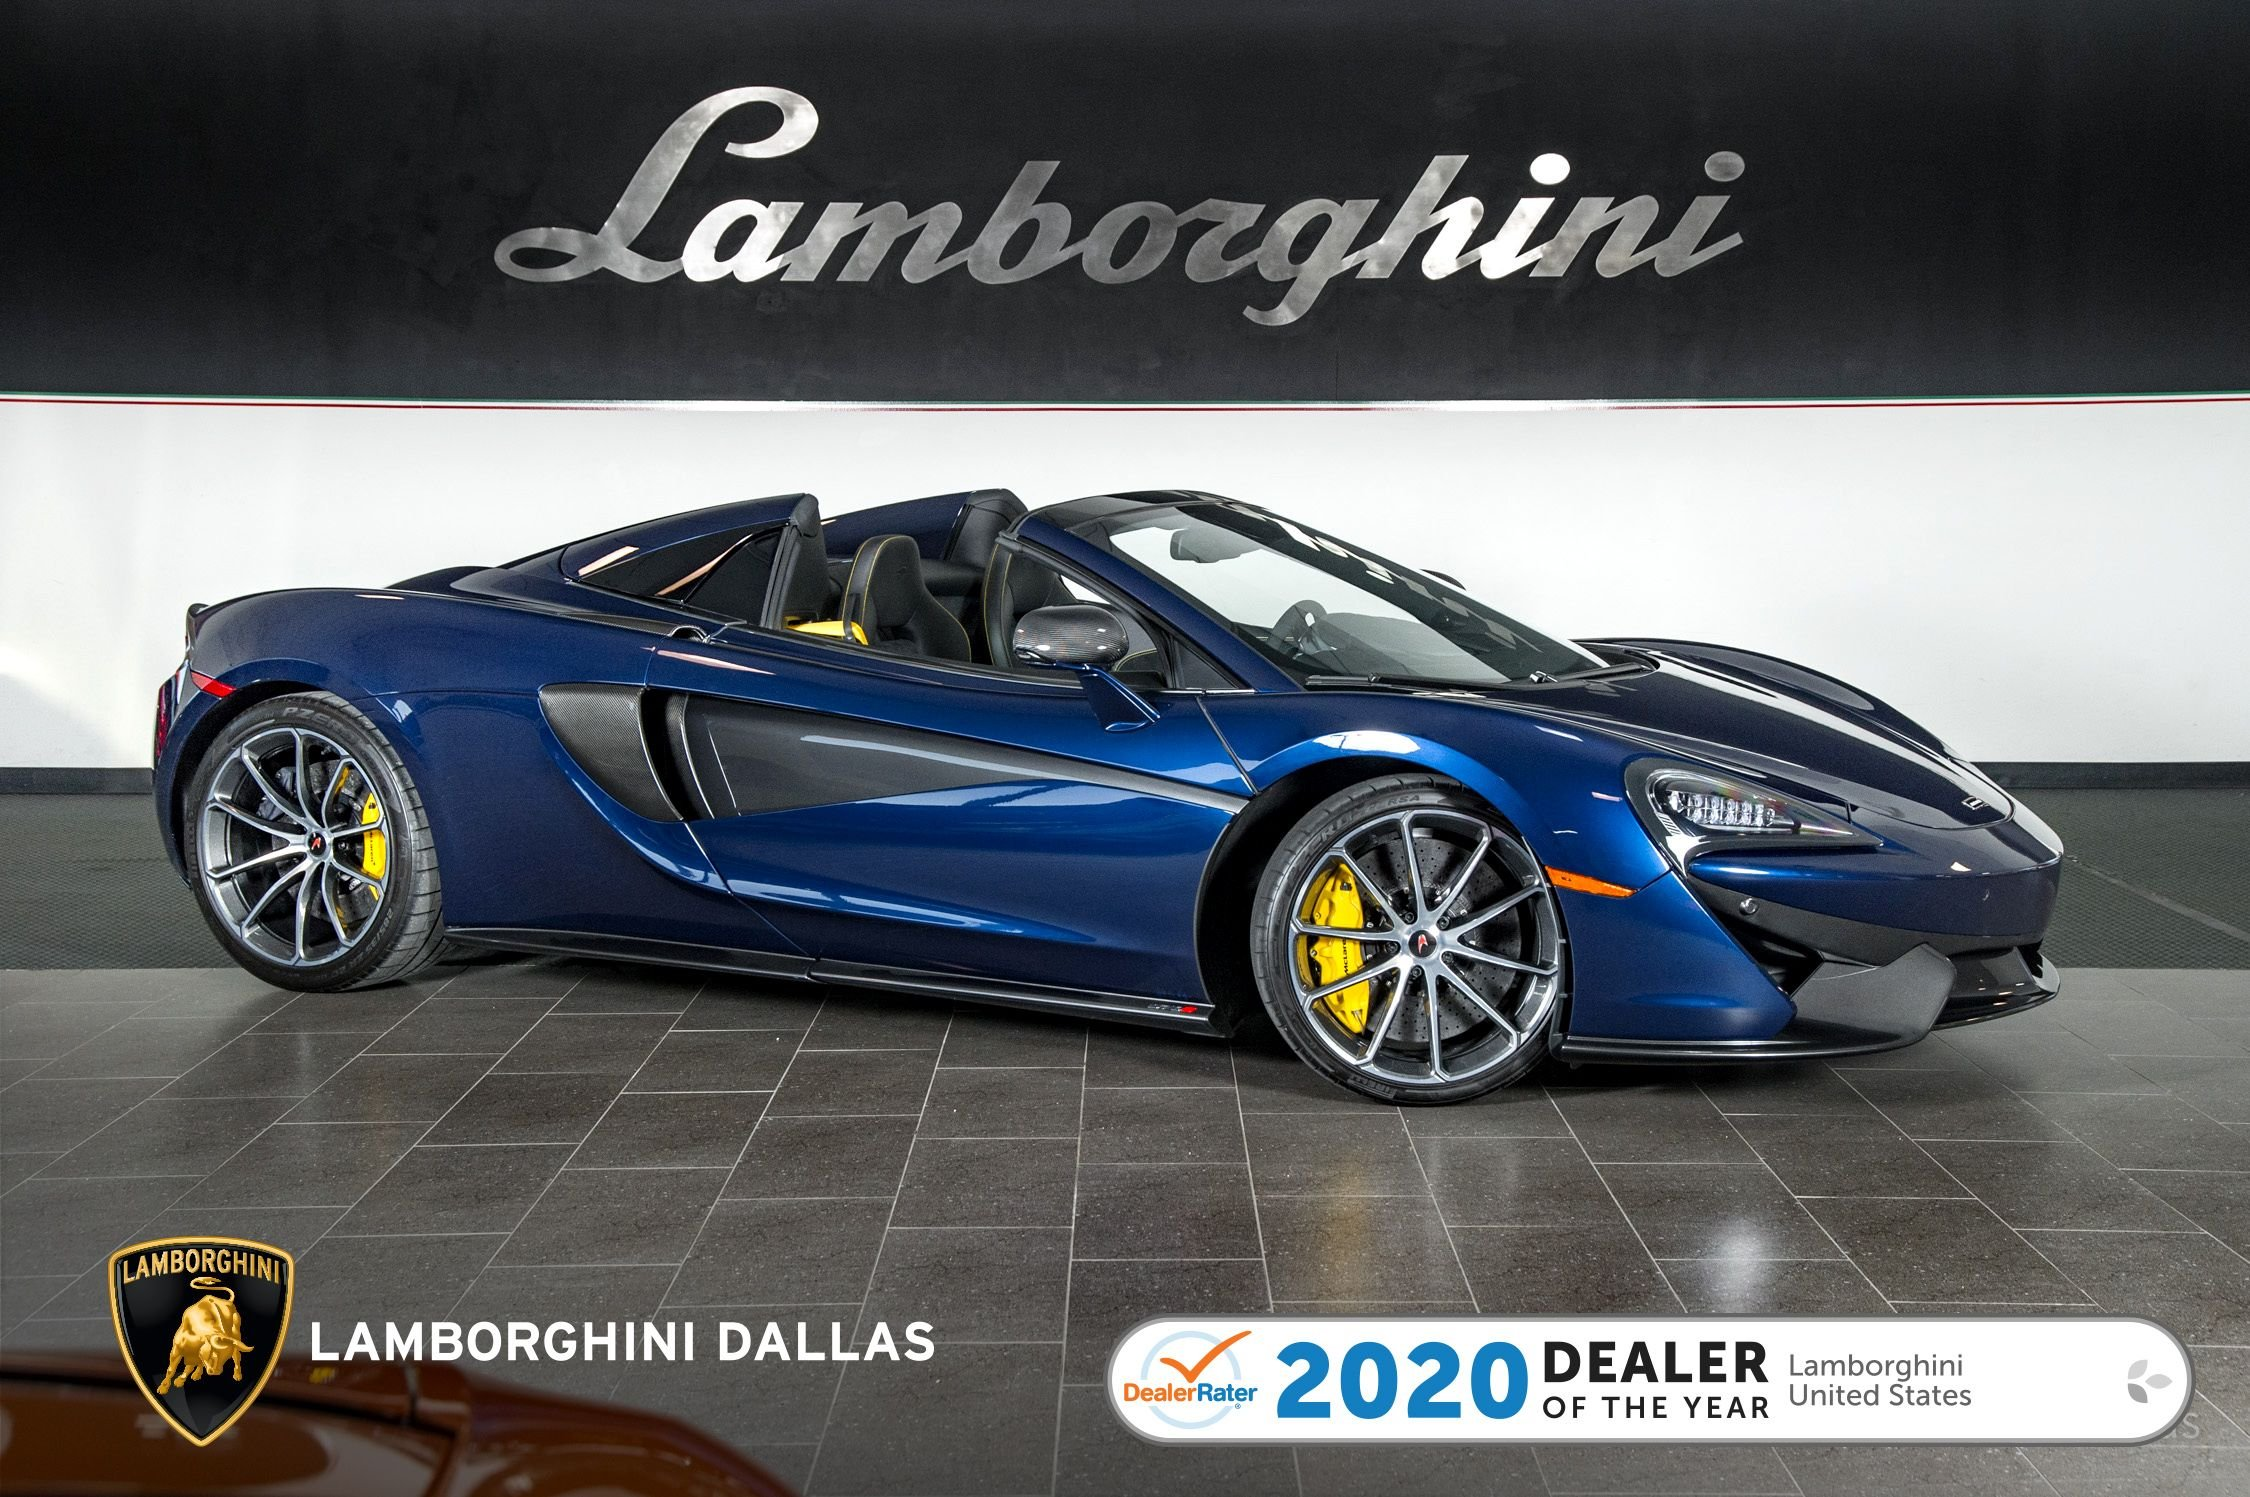 used 2018 McLaren 570S Spider car, priced at $179,999